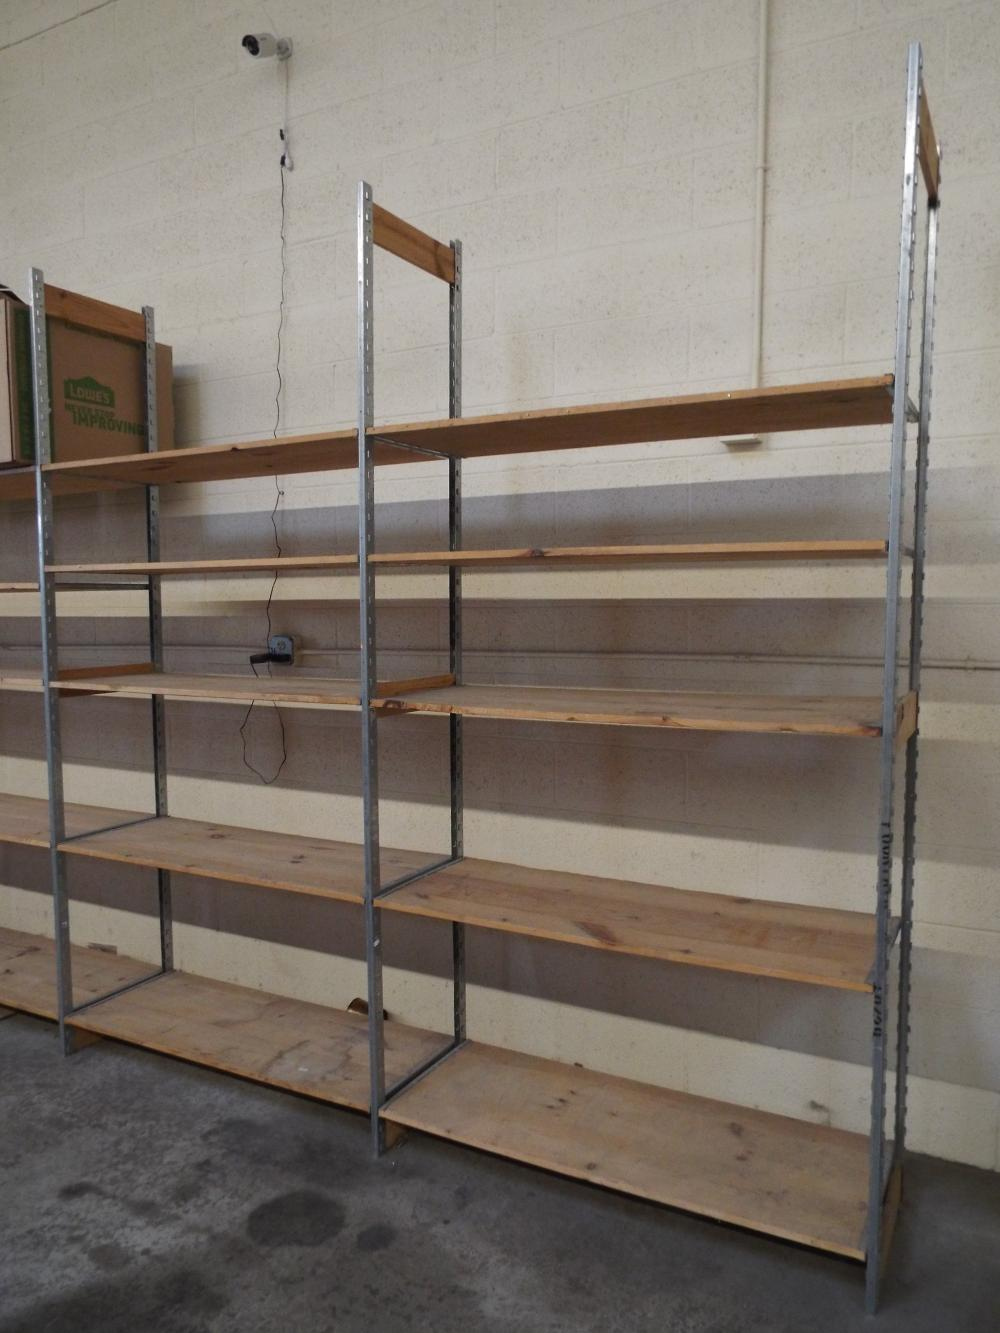 Garage Shelving Units Garage Shelving Unit